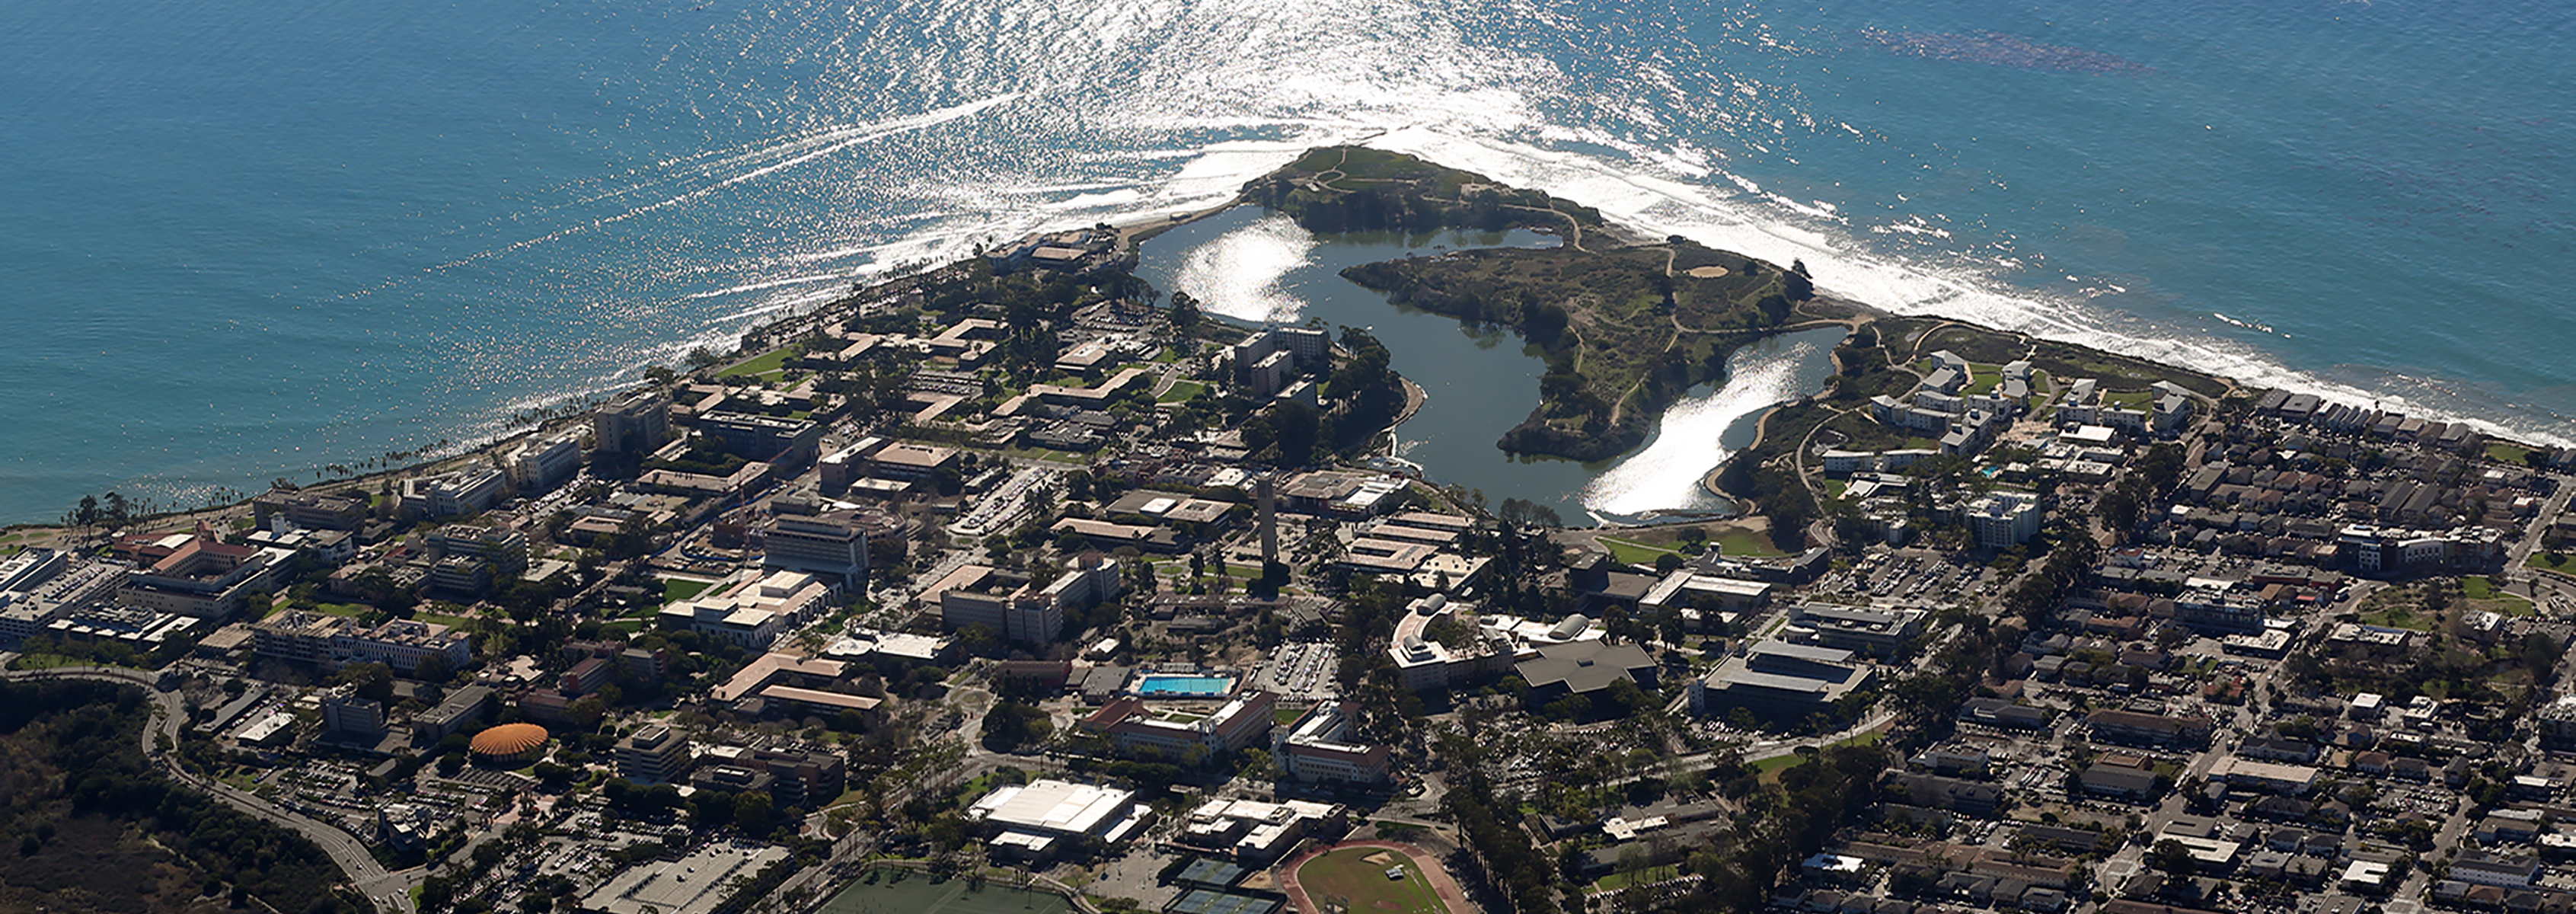 UCSB Campus Point sun reflecting ocean